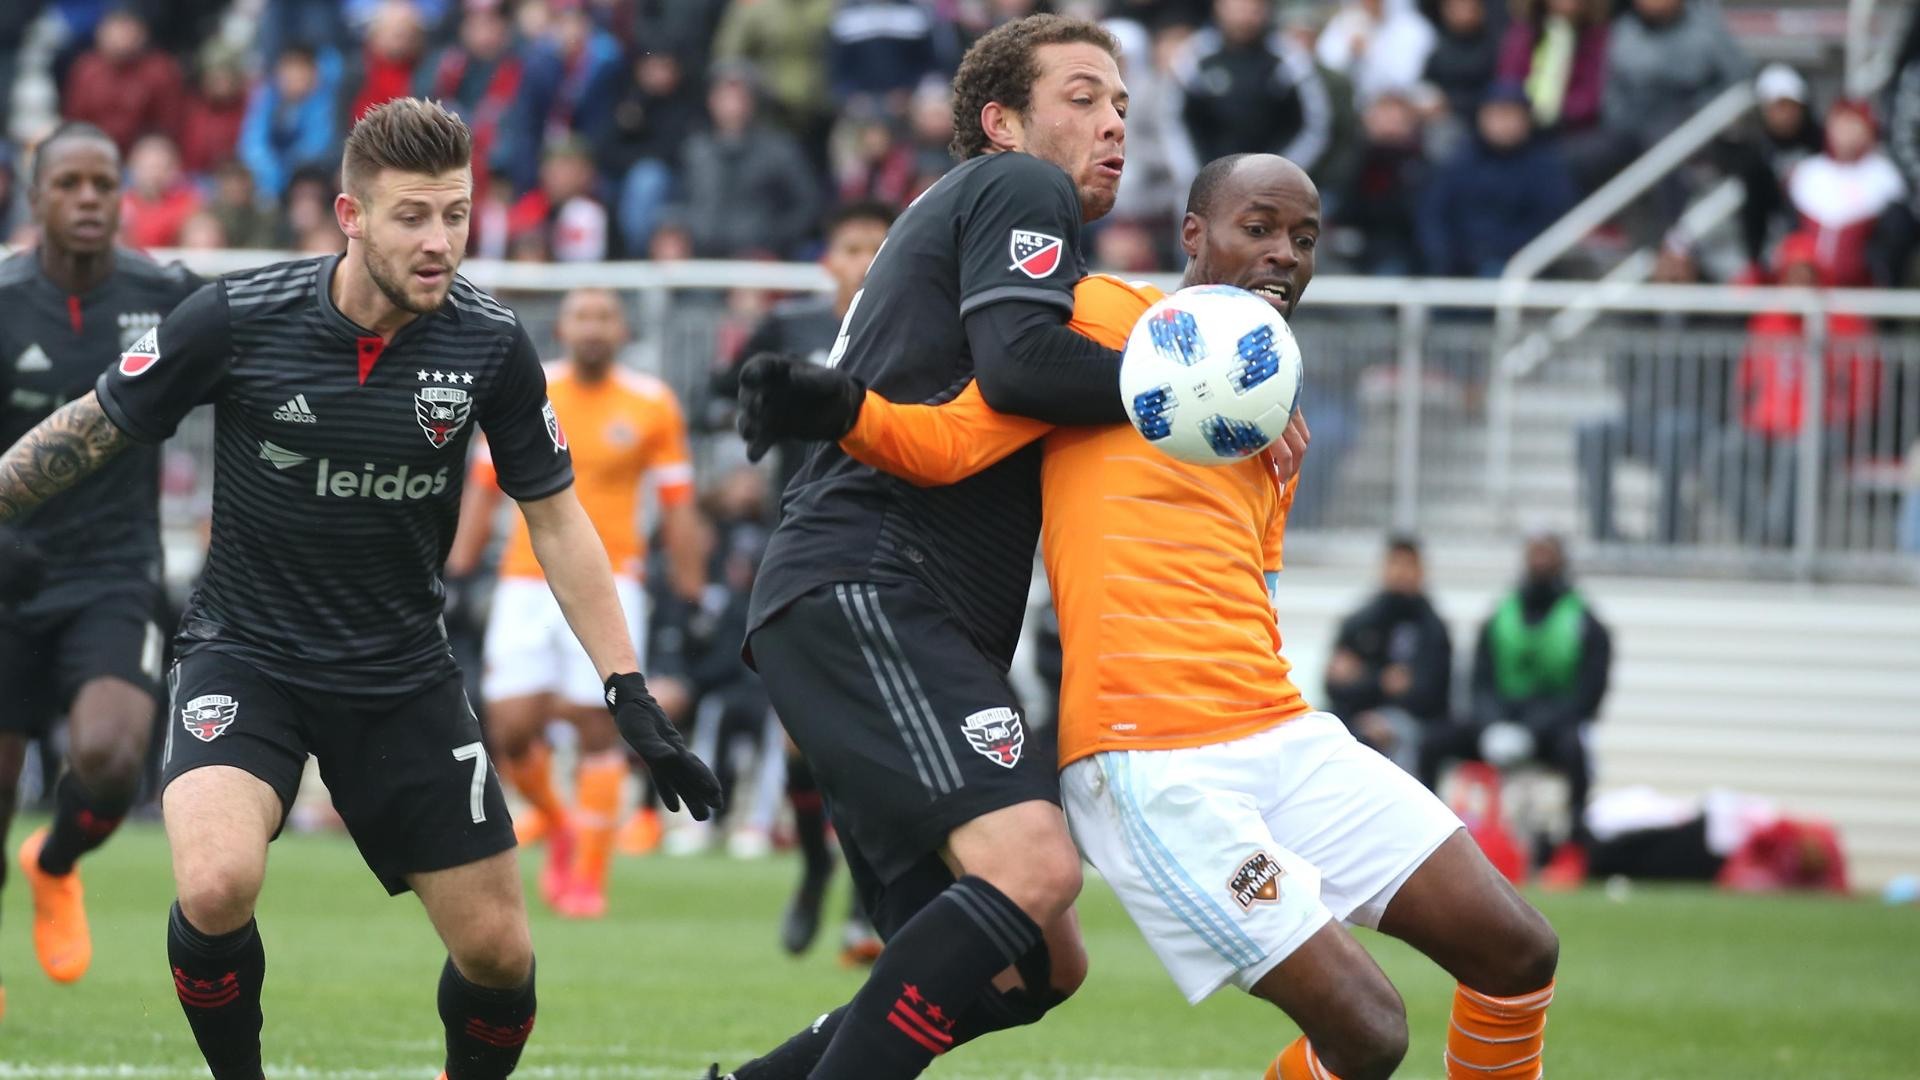 D.C. United 2-2 Houston: Acosta's equalizer earns point - Via MLS